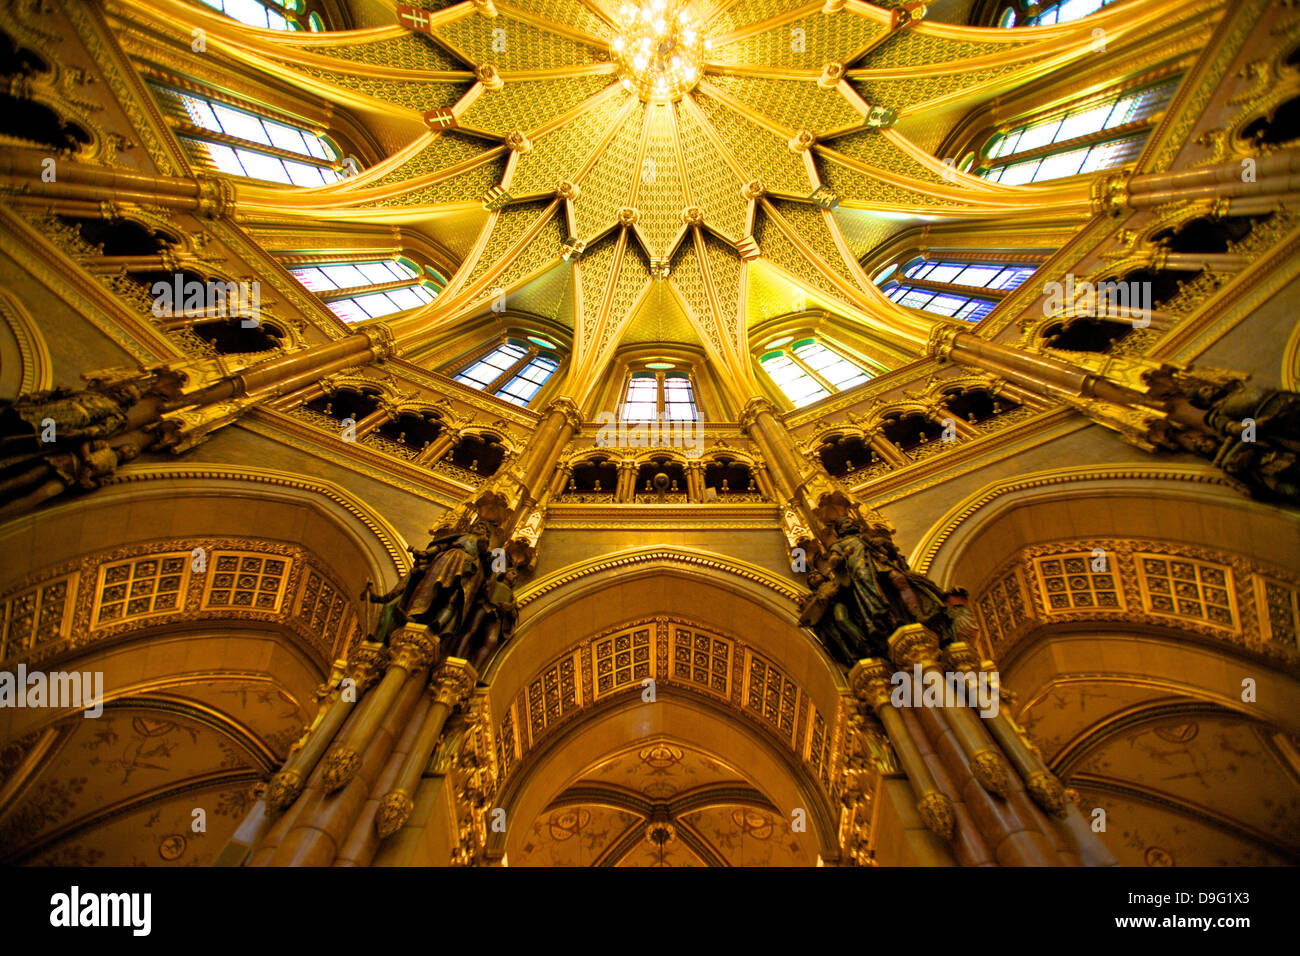 Central Hall ceiling, Hungarian Parliament Building, Budapest, Hungary - Stock Image